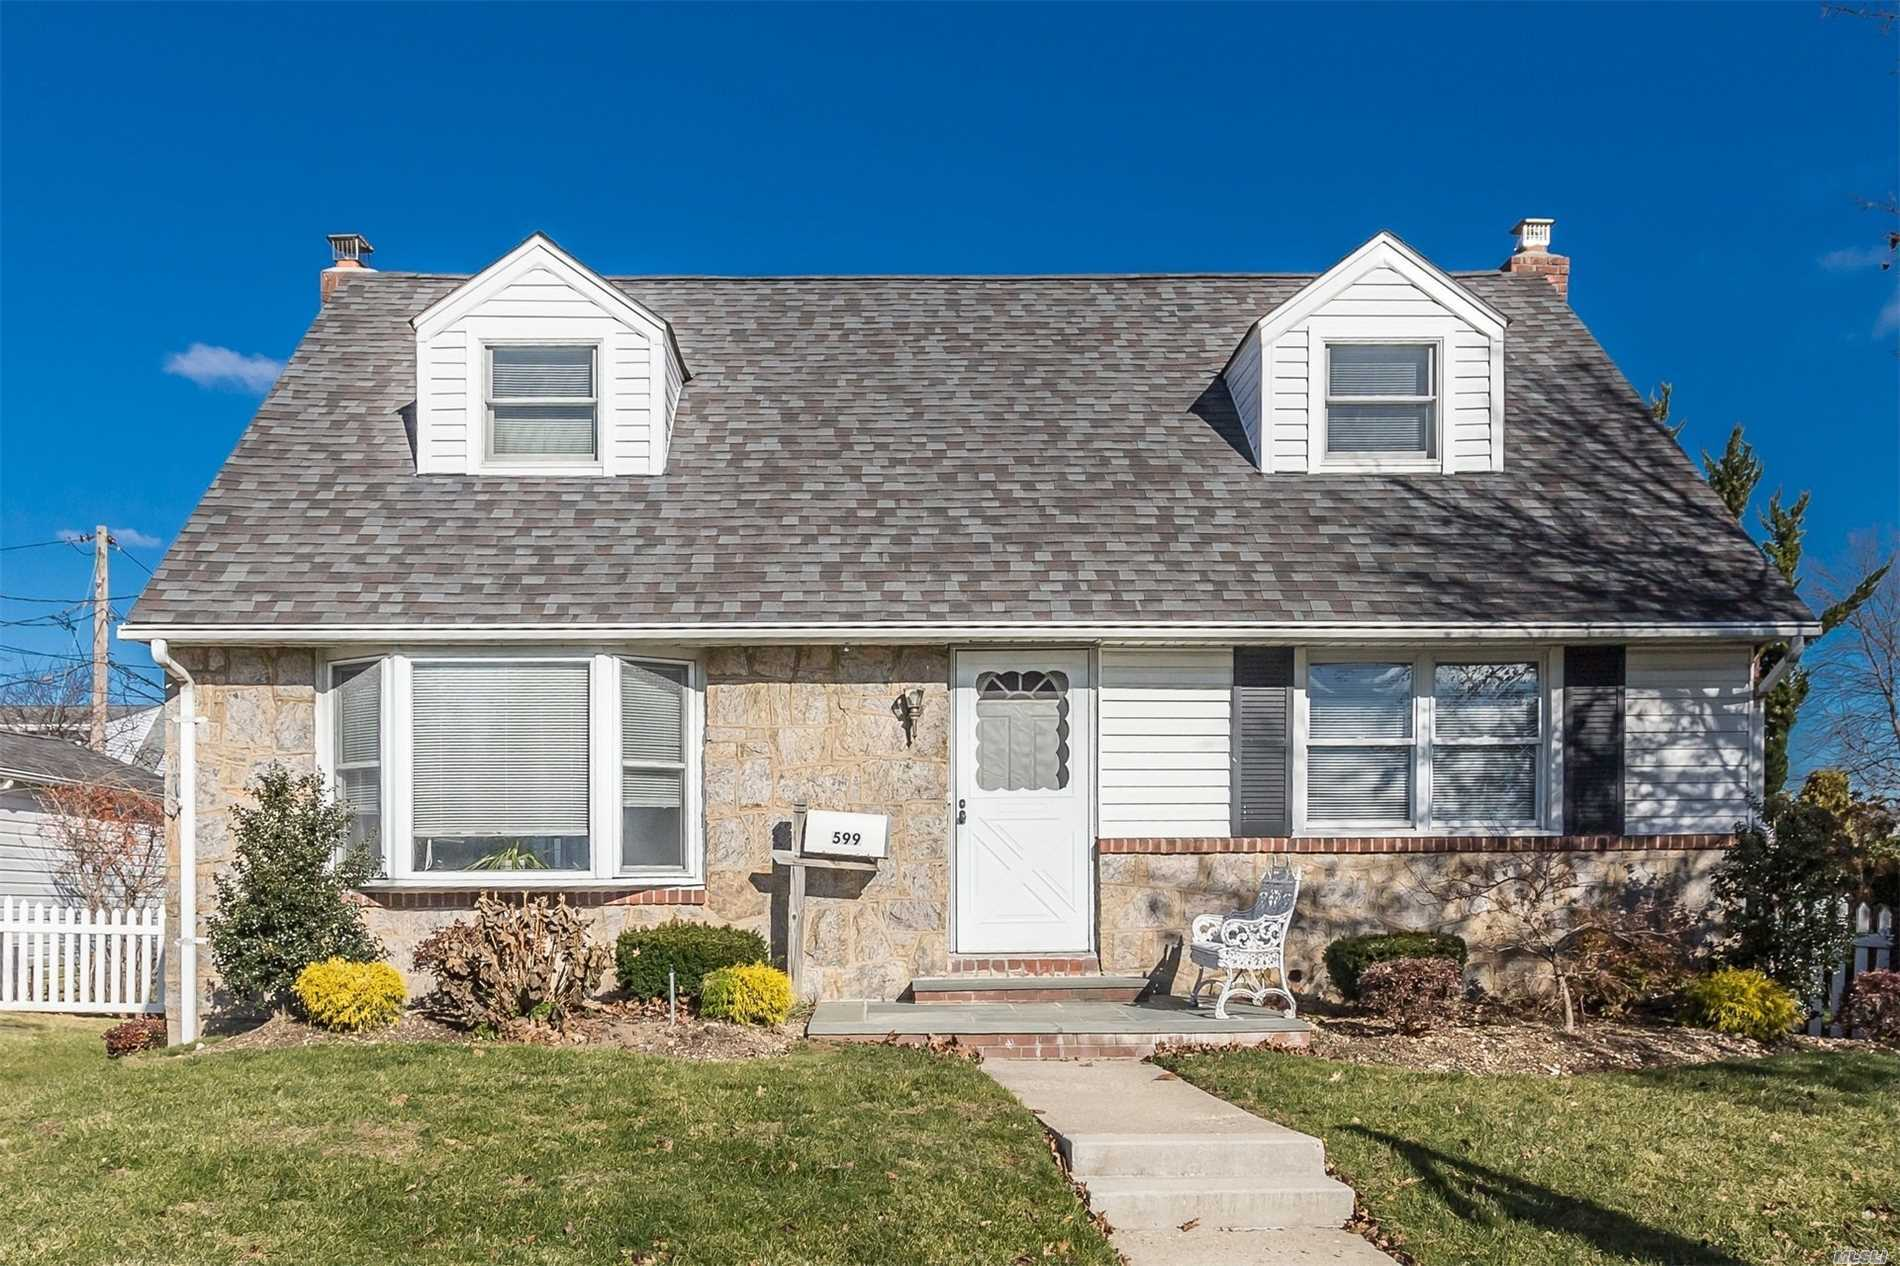 4 Br/3Full Bath Cape, Easy To Convert To Mother/Daughter. Newly Painted, Countless Updates, Cac, Inground Sprinklers, Full Basement With Beautiful Family Room W/Fp, Updated Electric, Detached Garage,  Trex Deck, Mature Fruit Trees, Lovely Landscaping. Low Taxes! Must See!